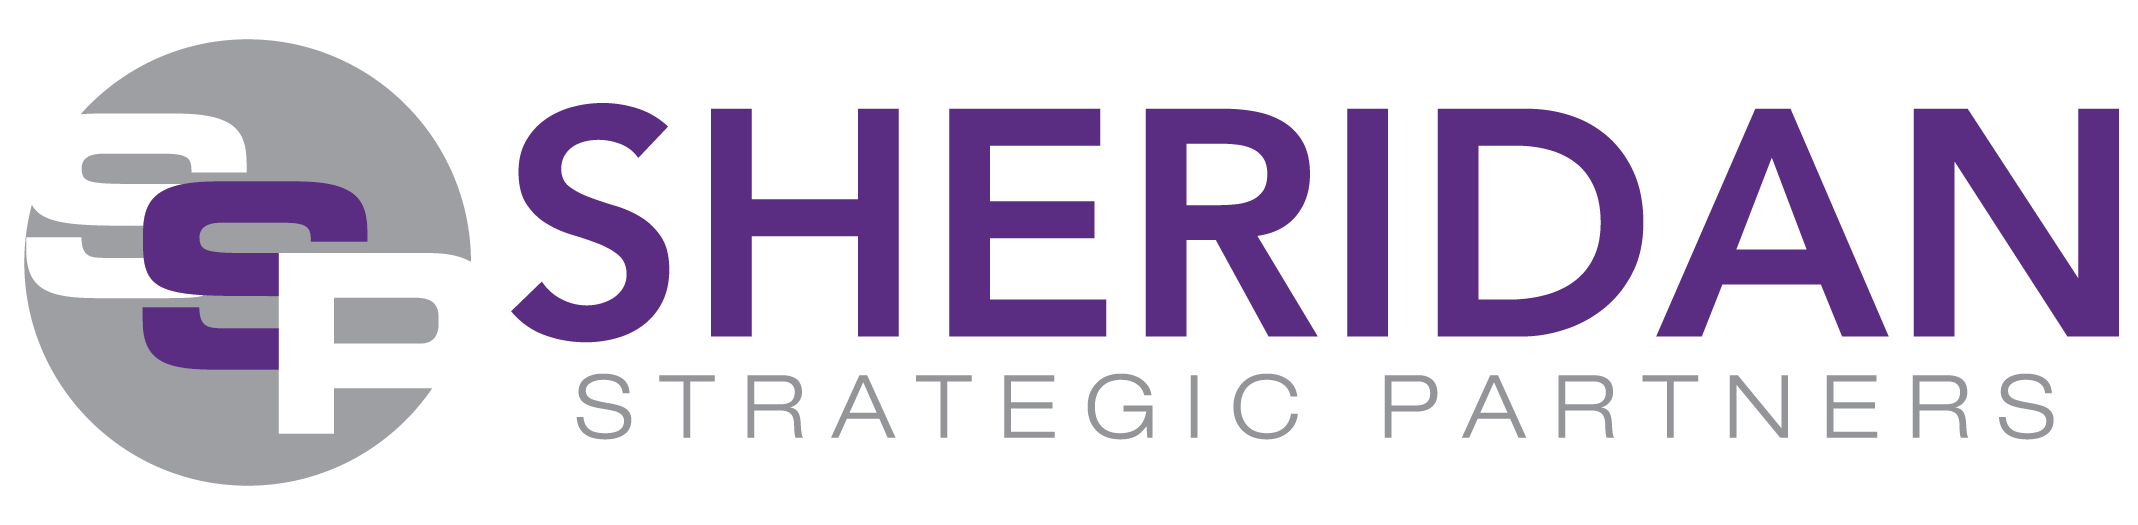 Sheridan Strategic Partners